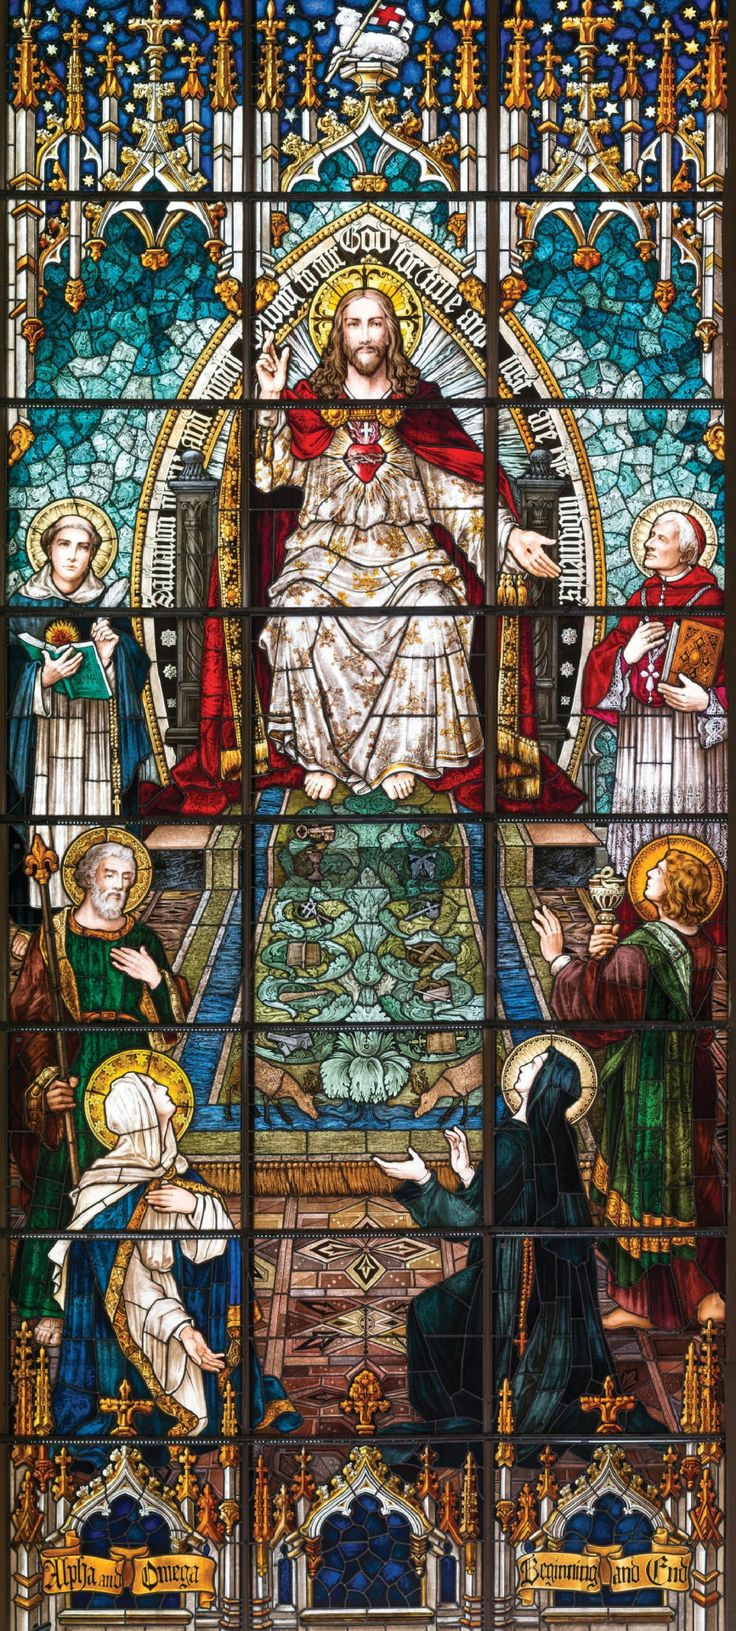 We illustrate the indebtedness of our center to both St. Thomas Aquinas and Blessed John Newman in the stained glass window above the high altar. It's the largest stained glass window installed in a...